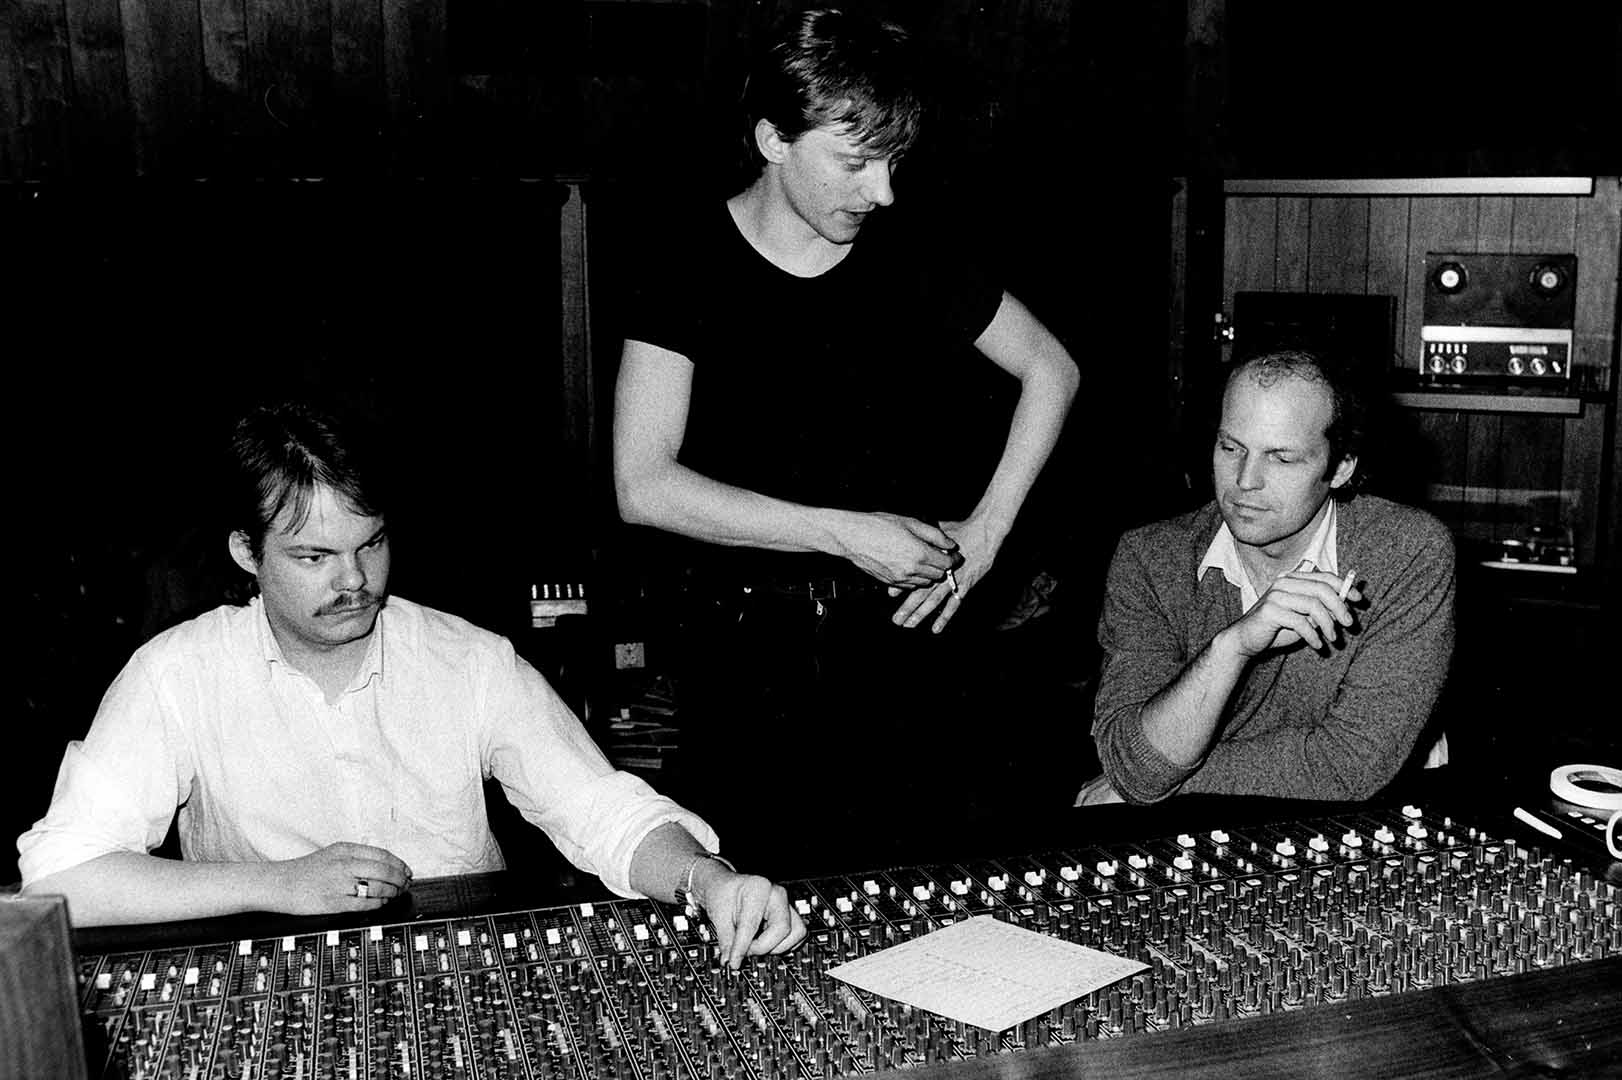 Lasse Wellander, Mats Ronander and Ronny Lahti in the studio